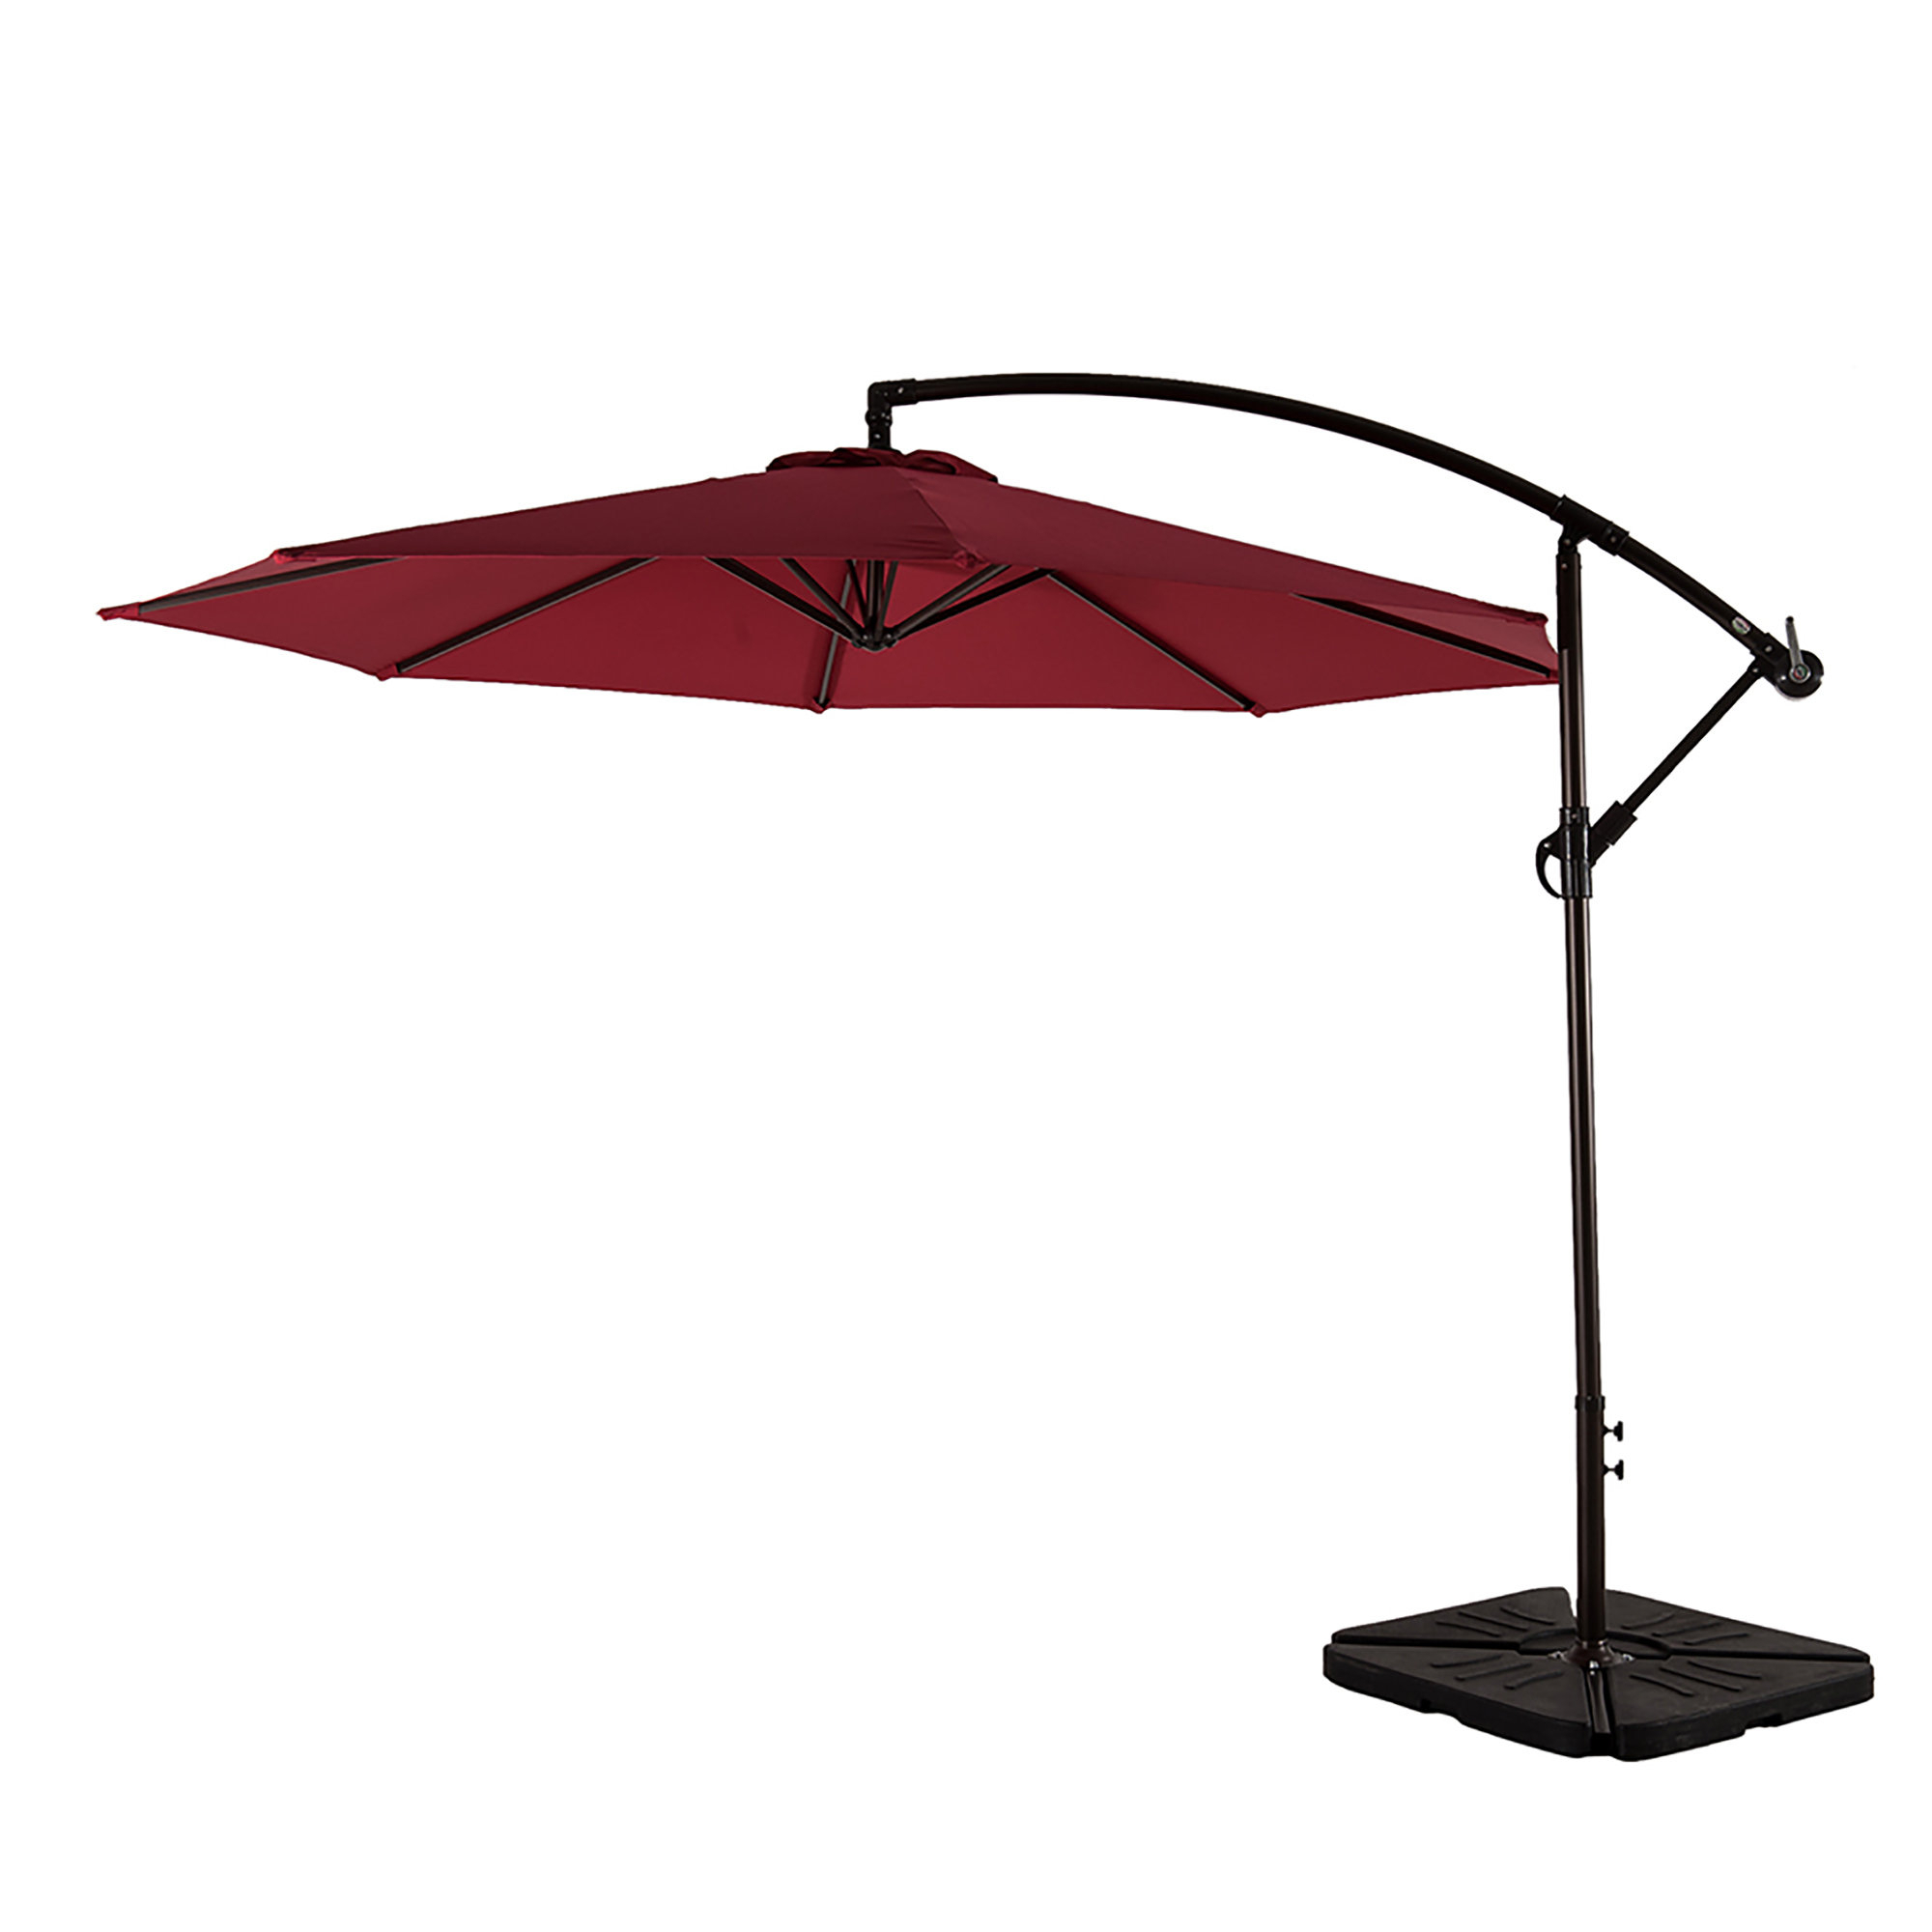 Karr 10' Cantilever Umbrella With Regard To Well Known Alyssa Cantilever Umbrellas (View 9 of 20)